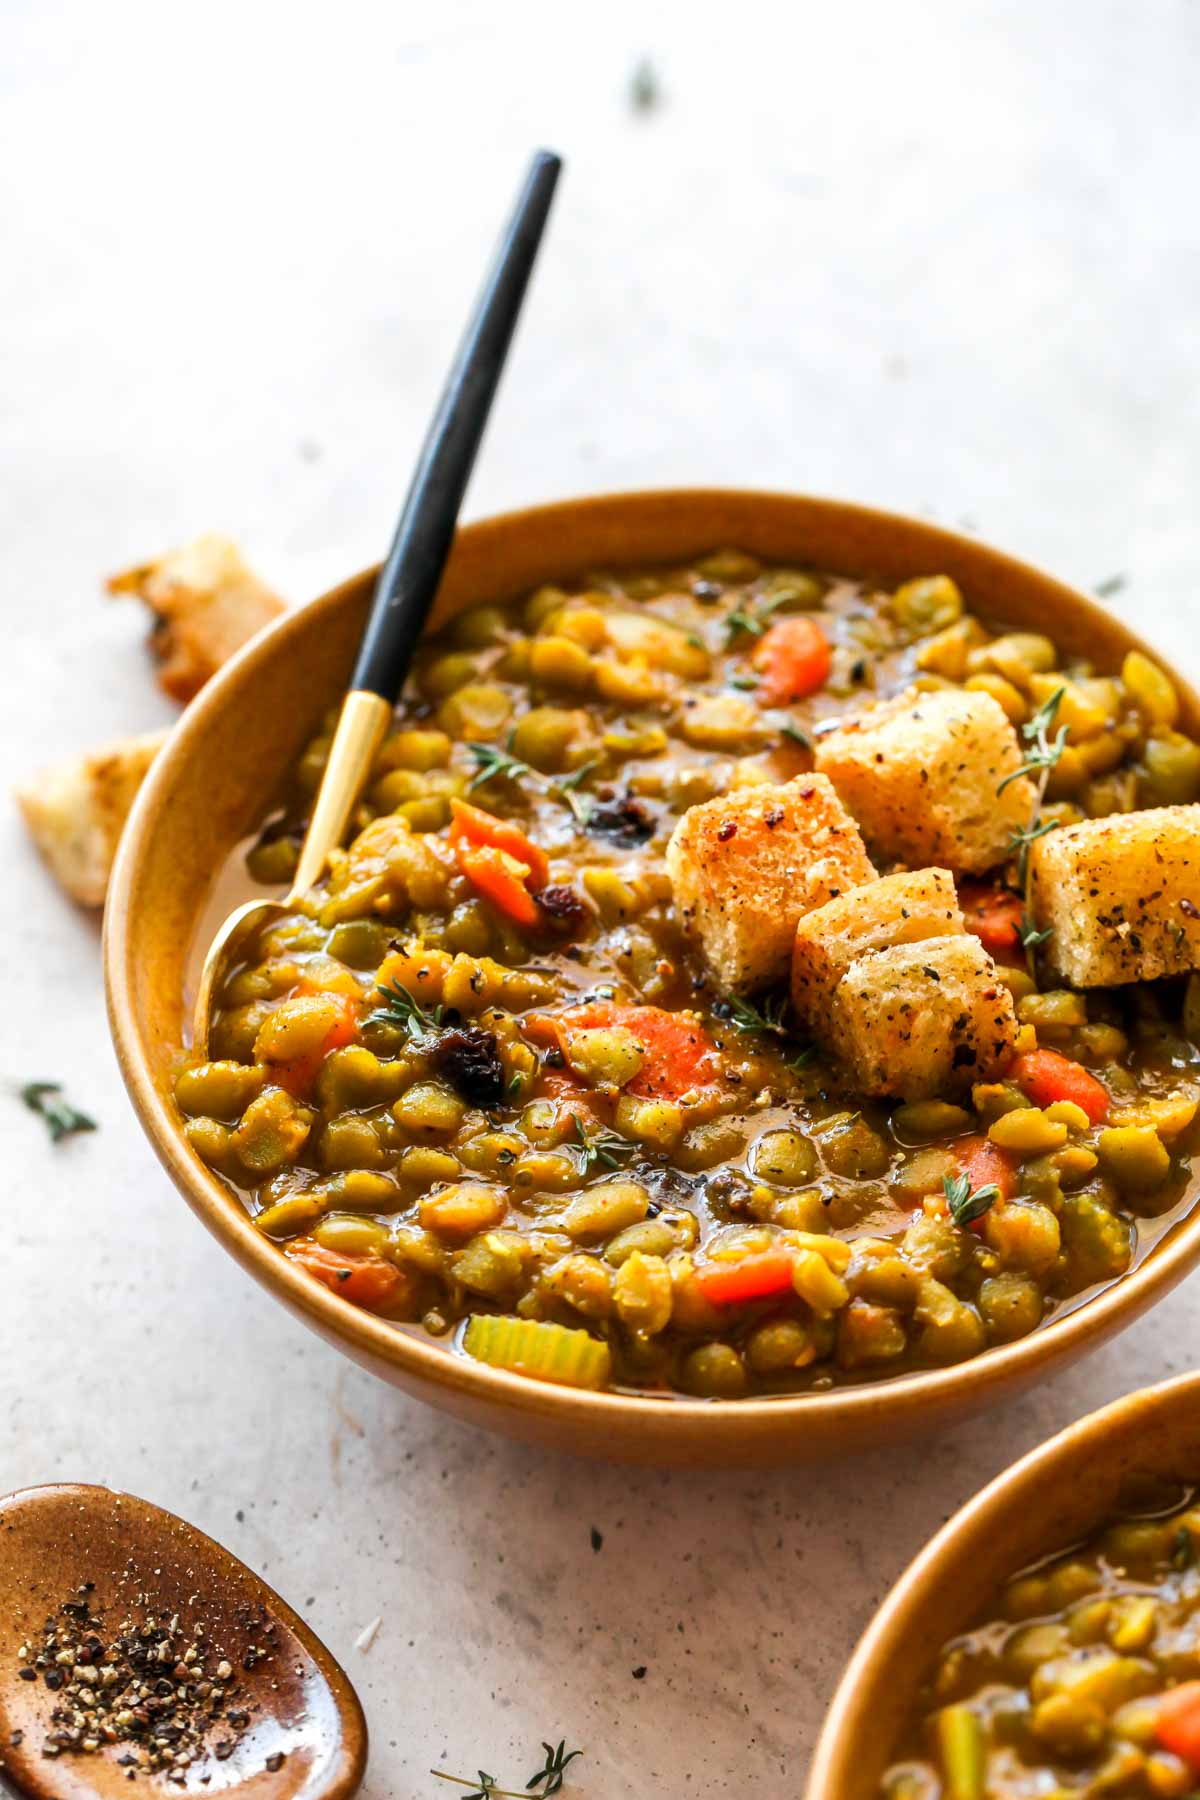 Moroccan Split Pea Soup served with raisins in a gold bowl